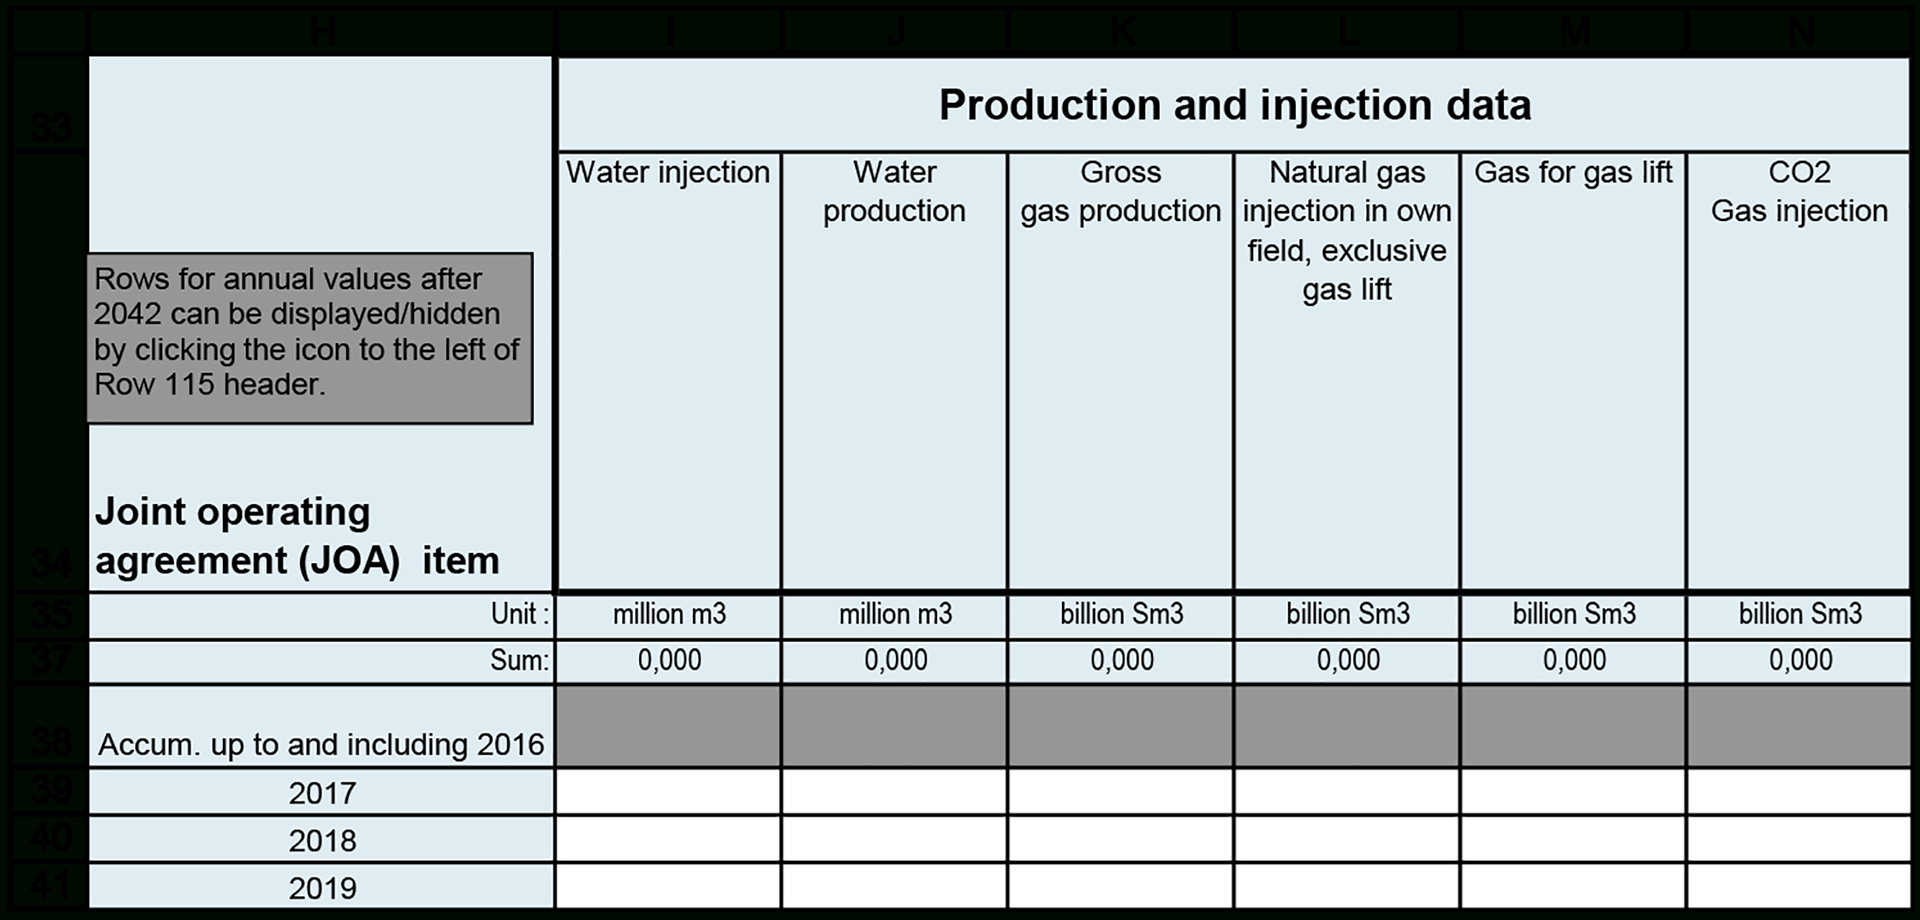 Gas Lift Design Spreadsheet For 6 Completion Of The